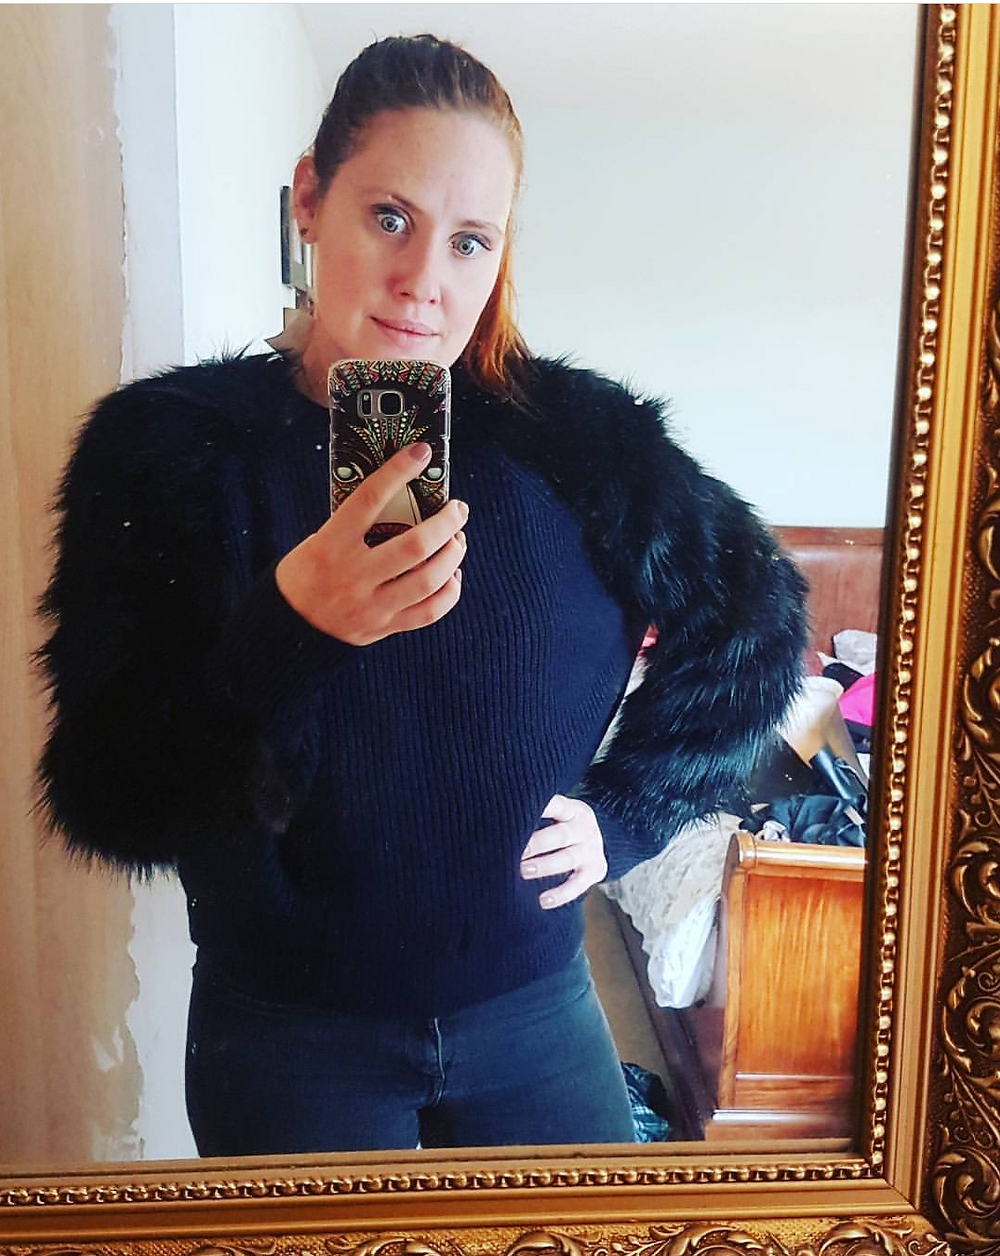 That time I bought a jumper that made me look like an actual monkey.